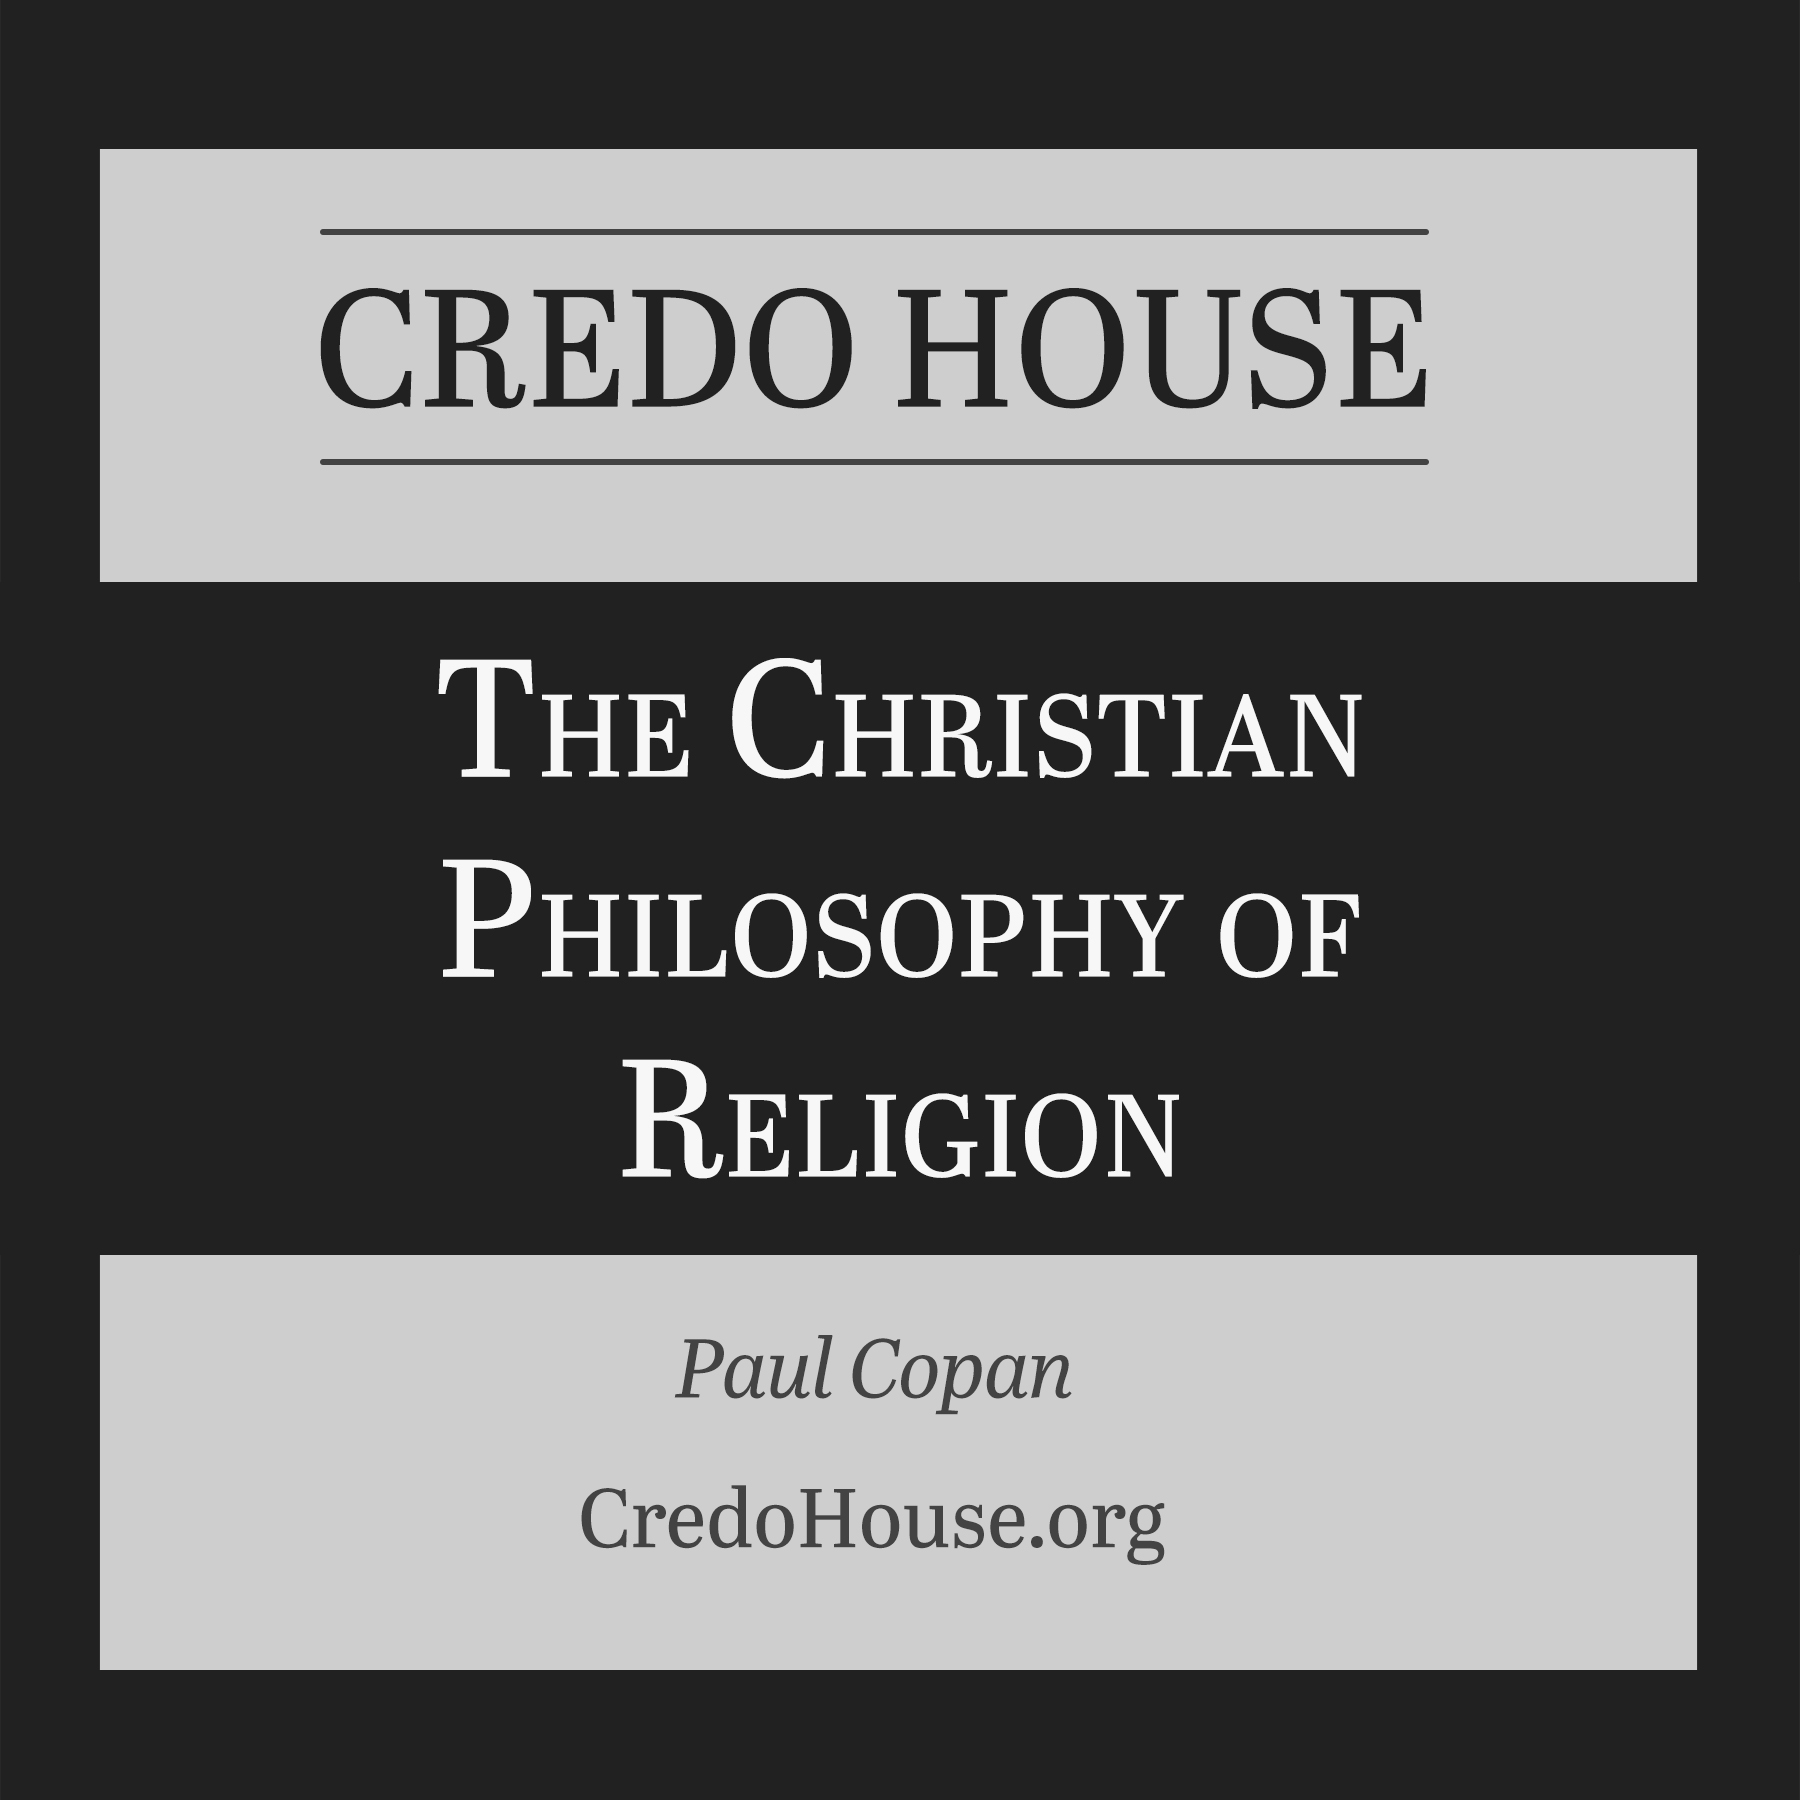 The Christian Philosophy of Religion